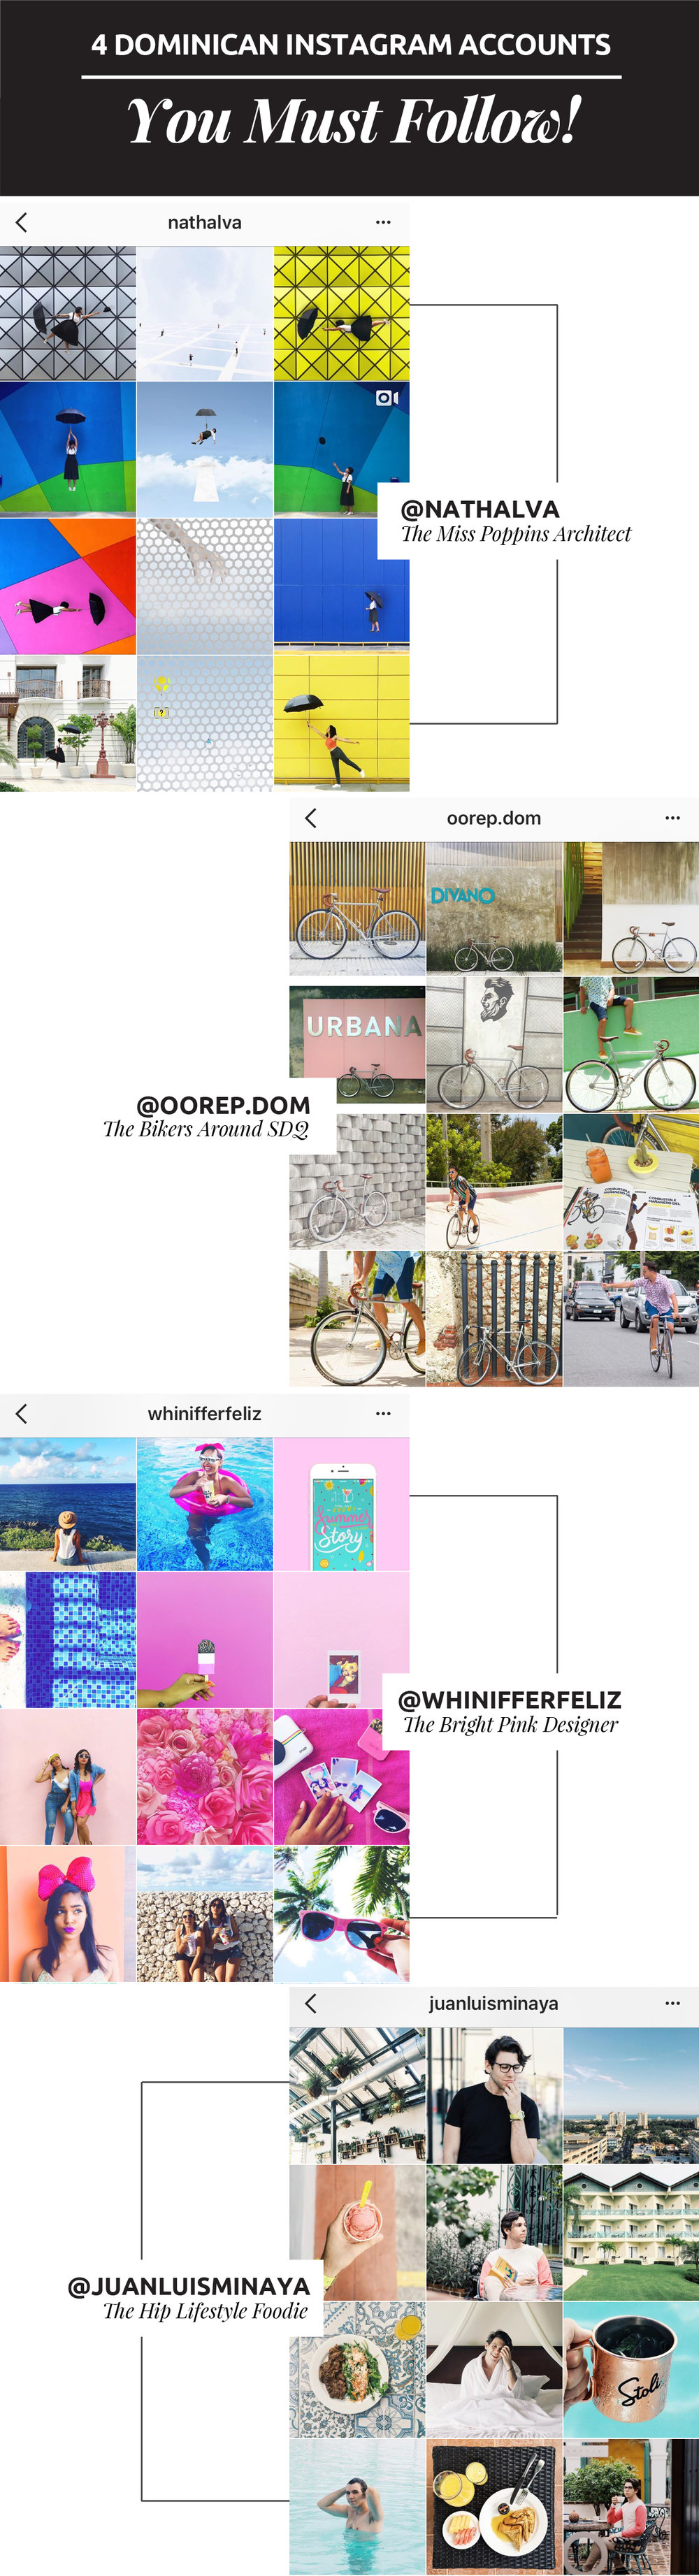 4 Dominican Instagram Accounts You Must Follow #5 I love seeing so many talented people inspiring us to be more creative. These are the 4 Dominican Instagram accounts you should start following now!